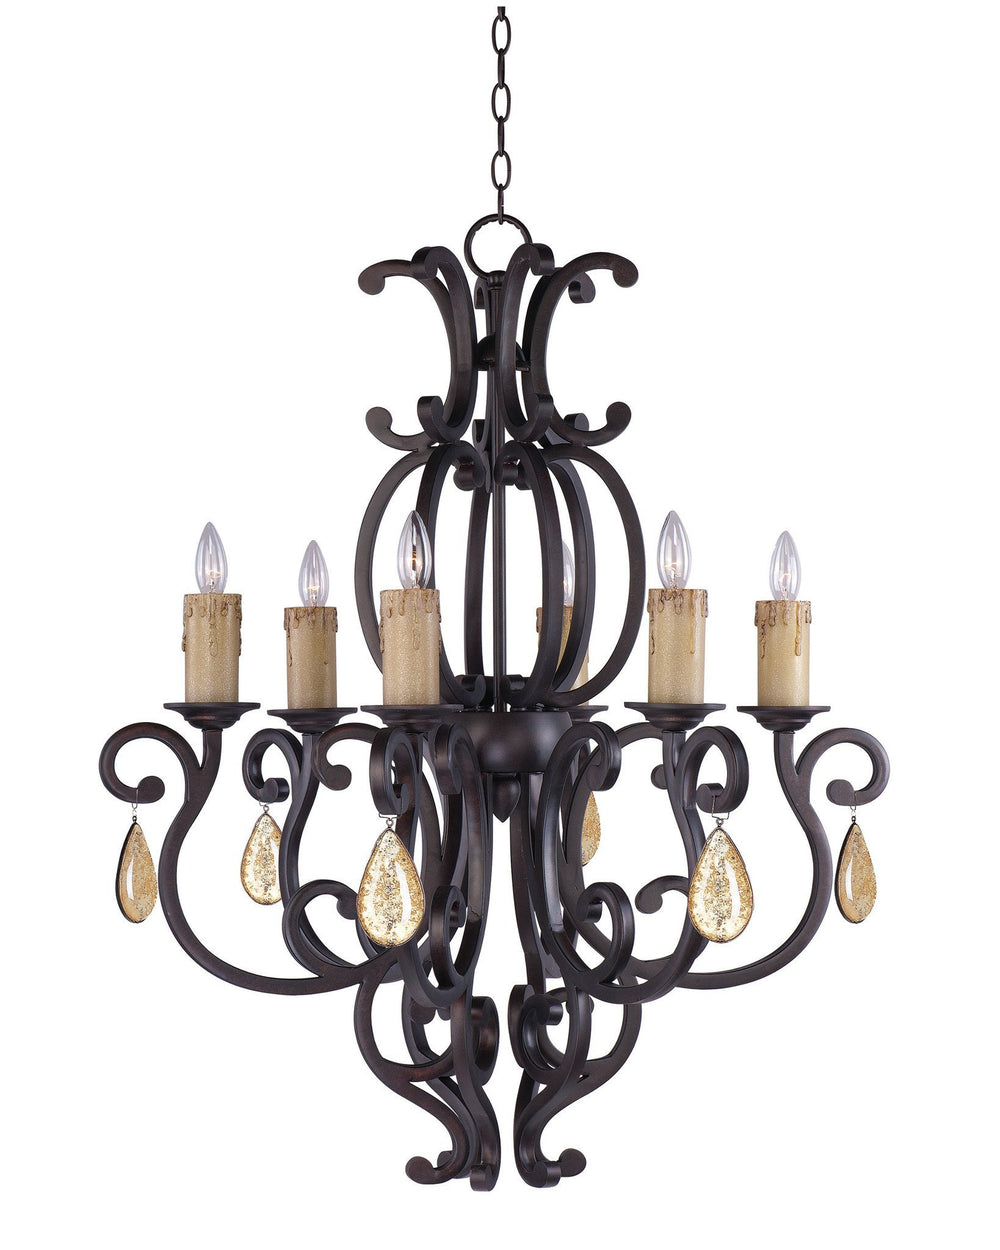 Maxim CRY09431005CU/ Richmond 6-Light Chandelier with Crystals